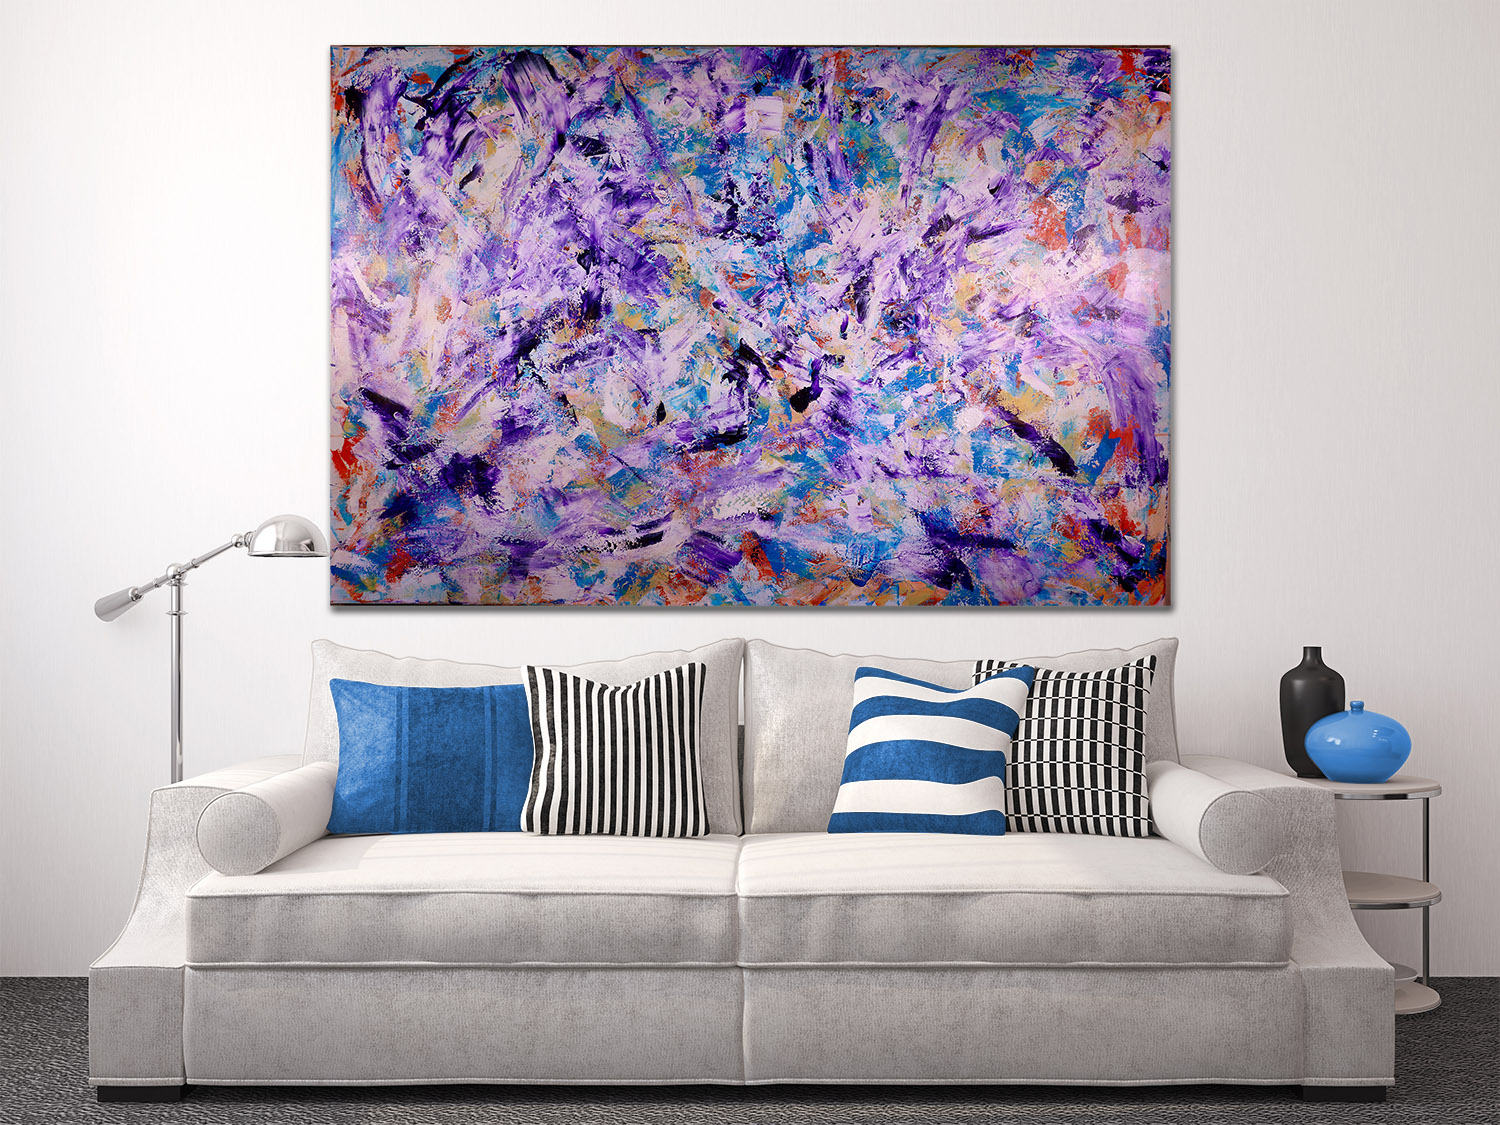 Iridescent Purple (Echoes) (2016) Acrylic painting by Nestor Toro